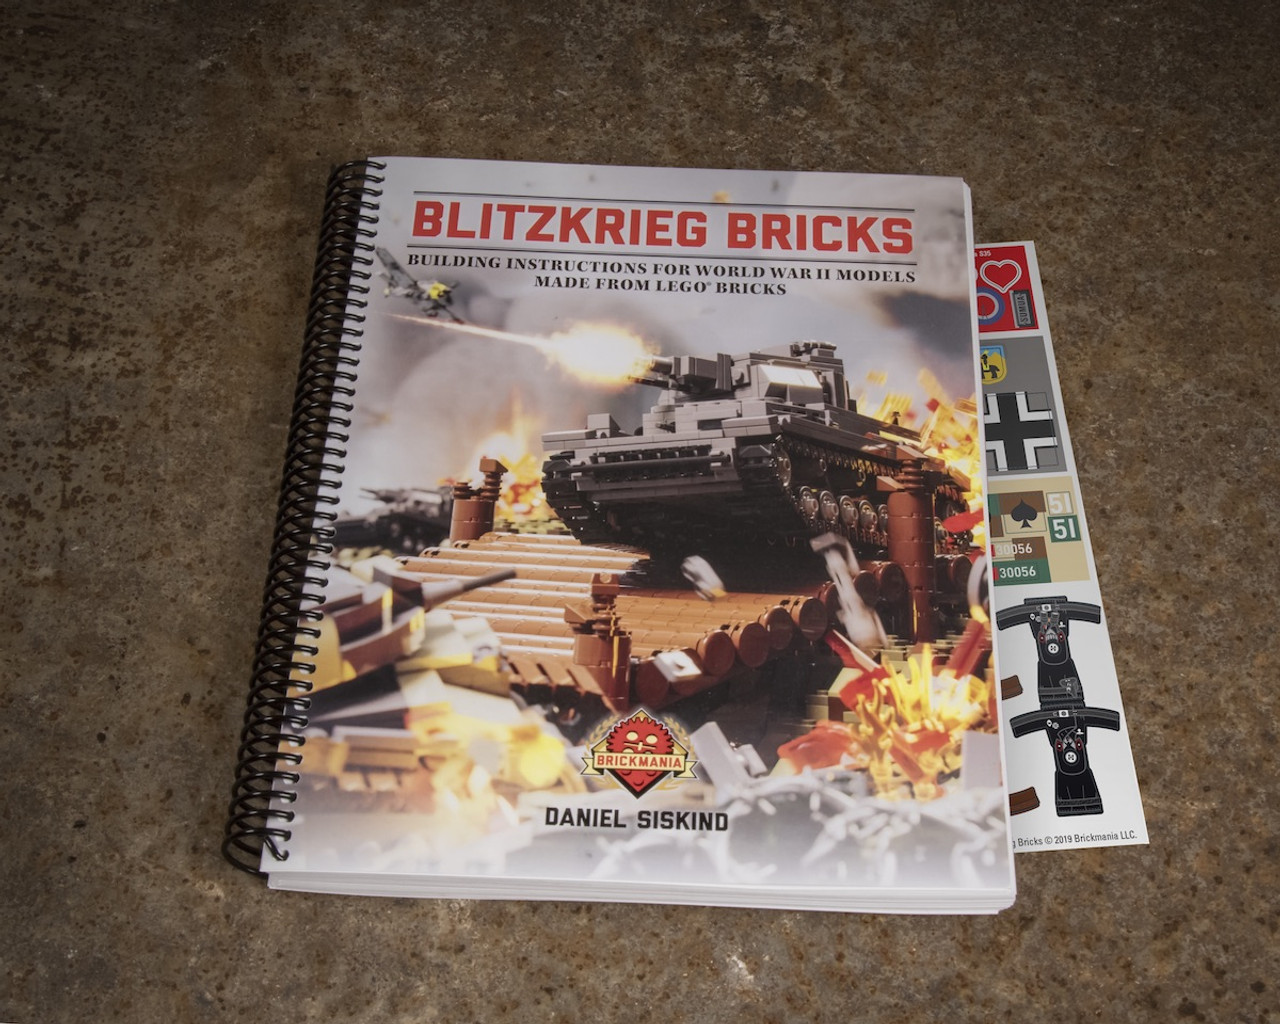 Blitzkrieg Bricks: Building Instructions for World War II Models Made From LEGO® Bricks